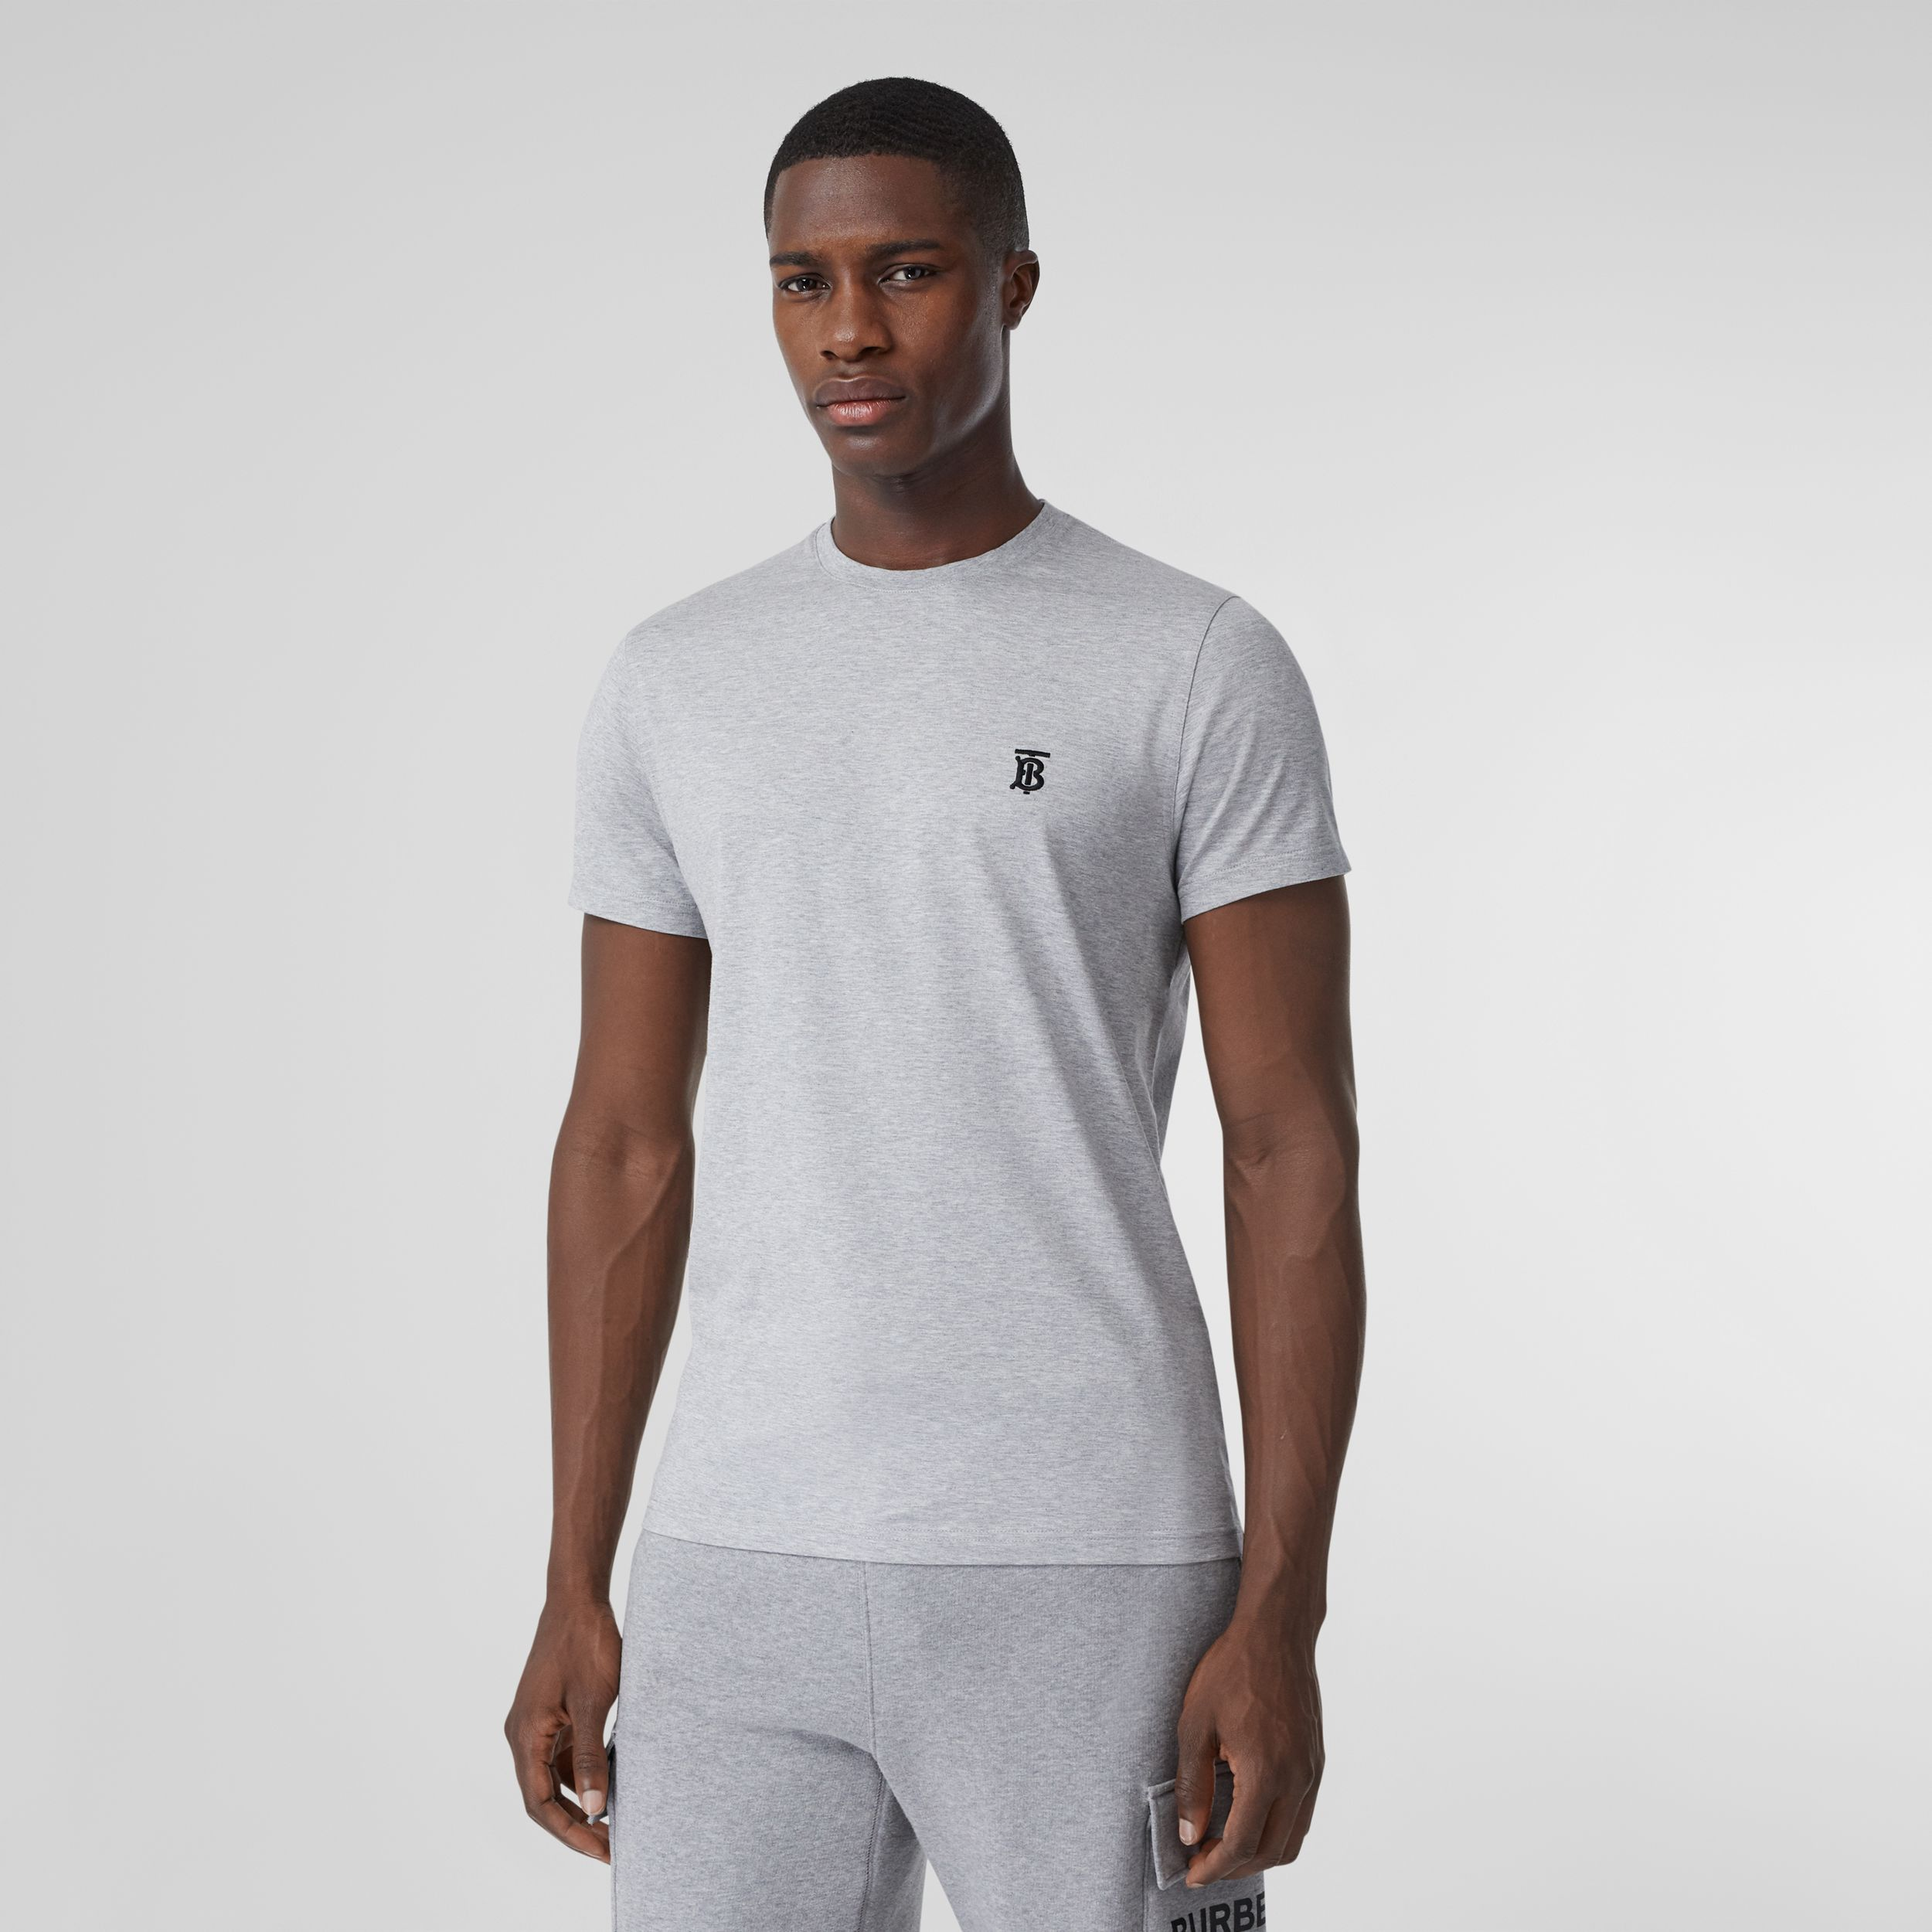 Monogram Motif Cotton T-shirt in Pale Grey Melange - Men | Burberry - 1